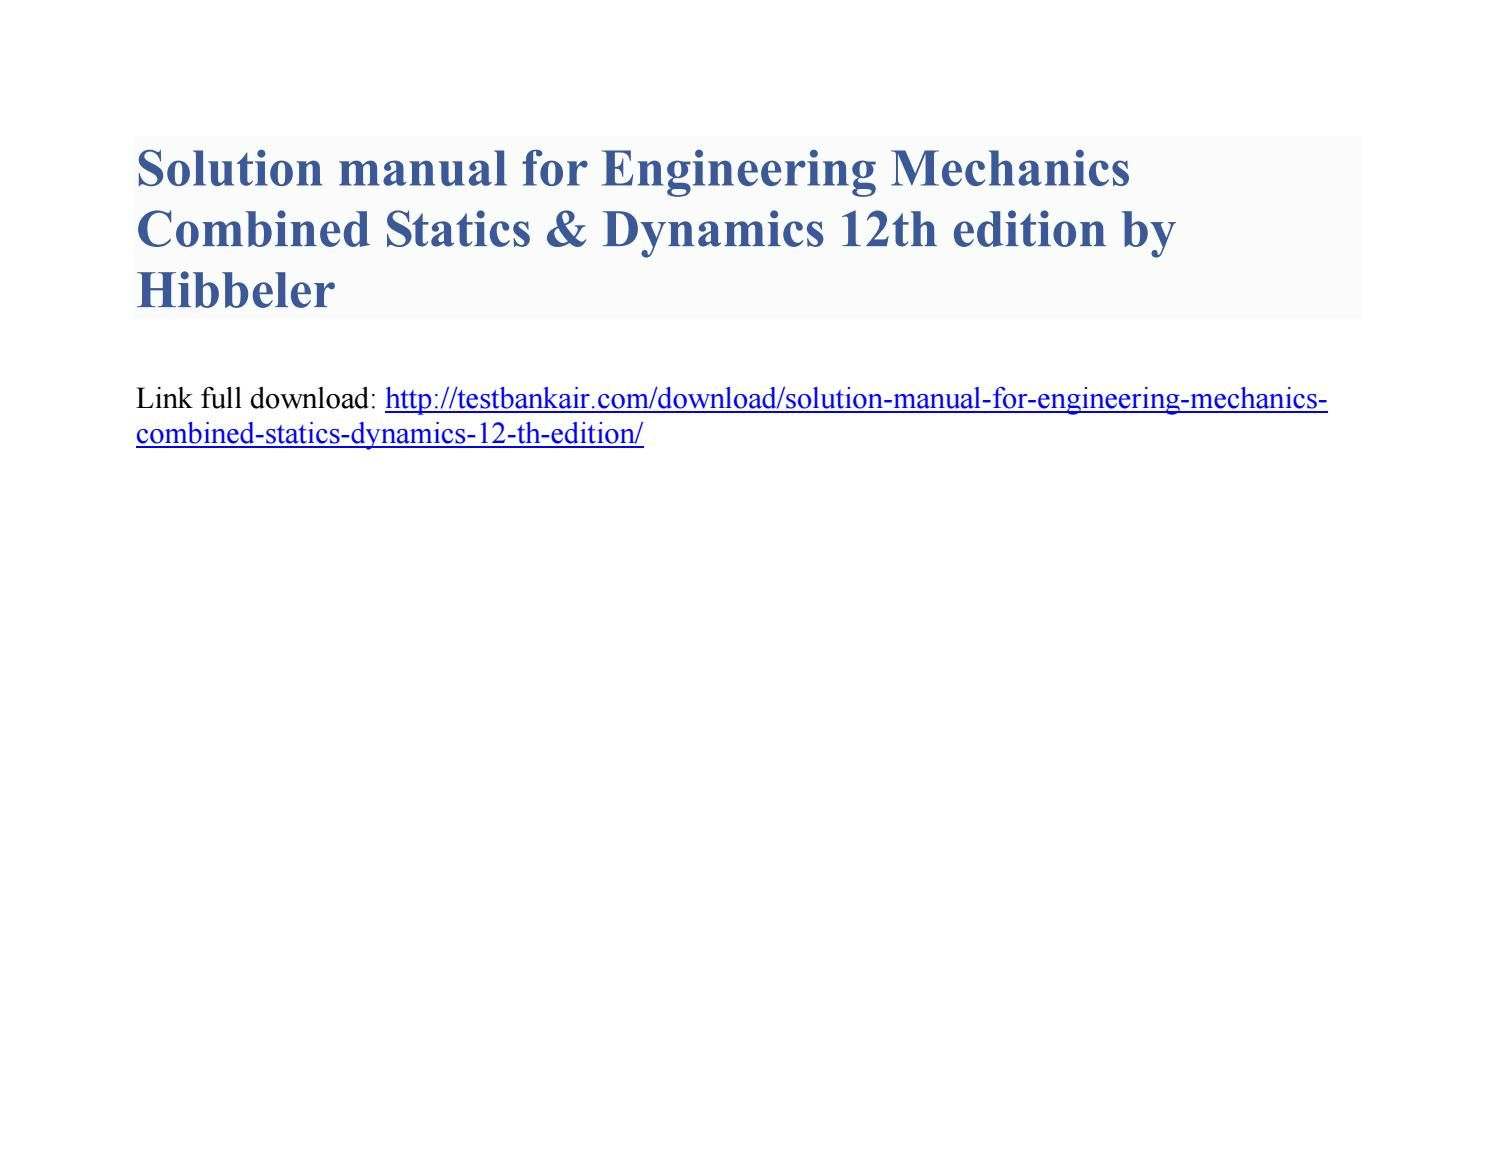 Download Solution Manual for Engineering Mechanics Combined Statics Dynamics  12th Edition by Hibbele